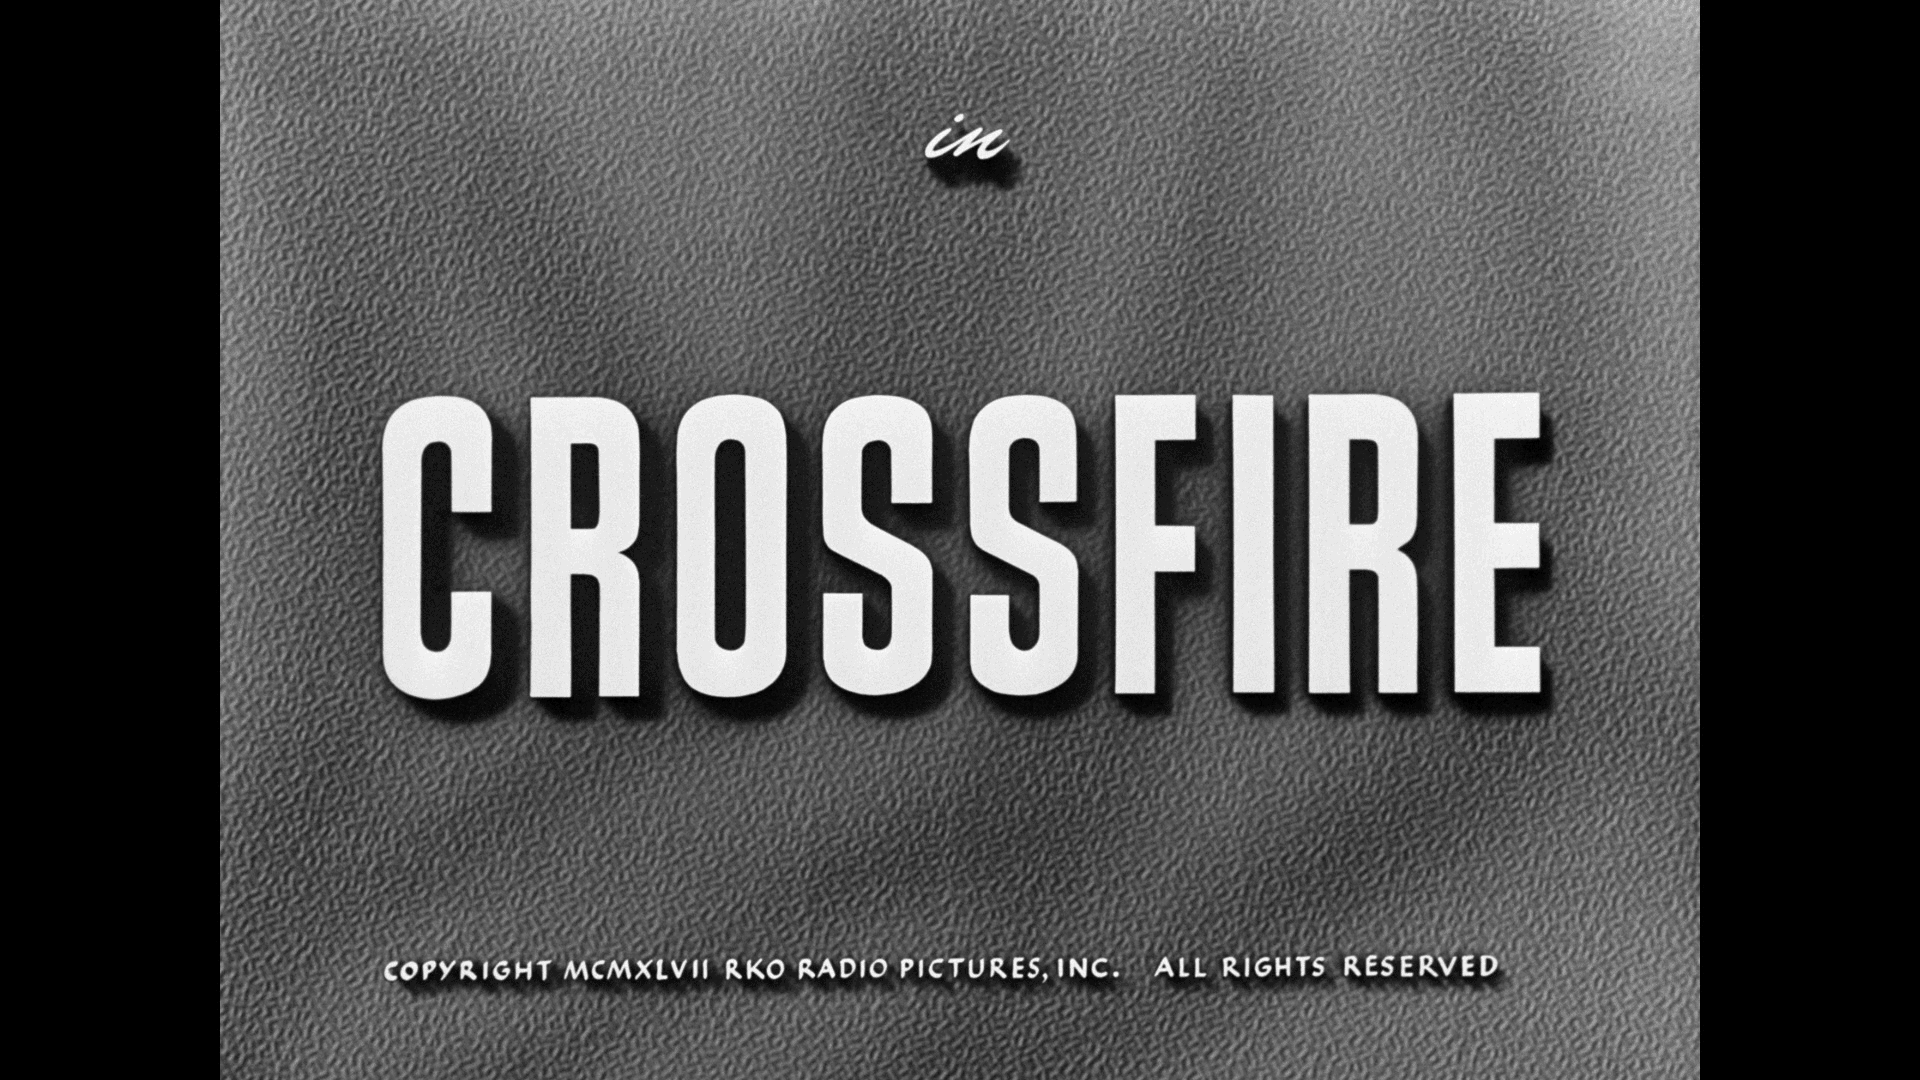 Crossfire title Warner Archive Blu-ray March 2021